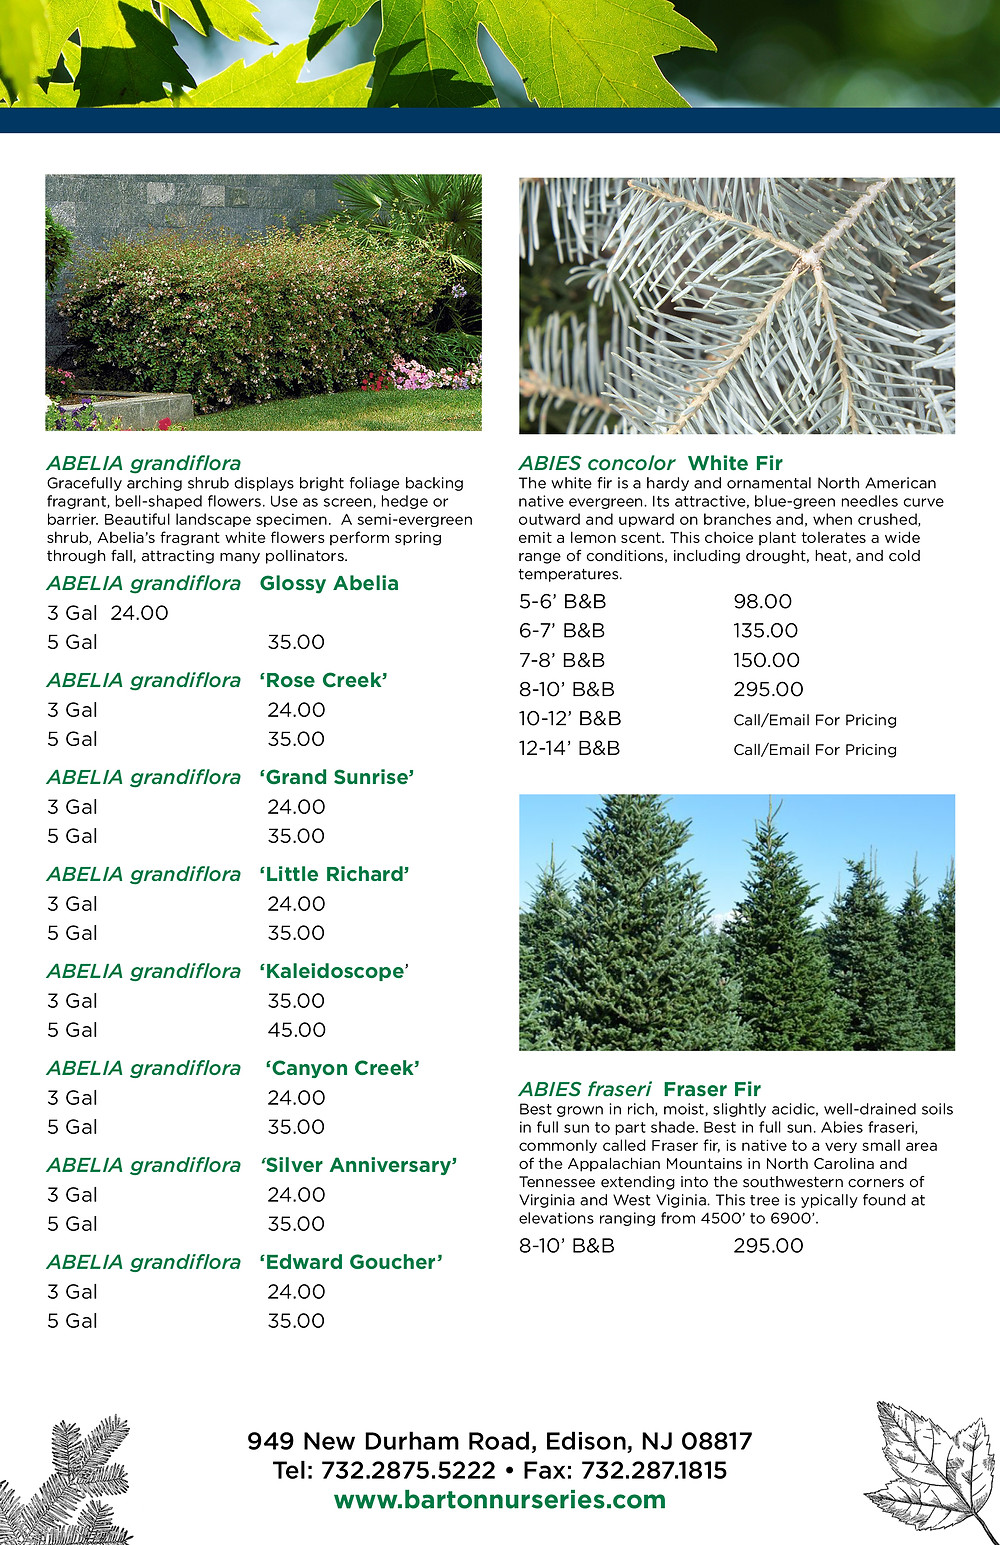 Catalog Designer for Tree Nursery - Barton Nurseries in NJ